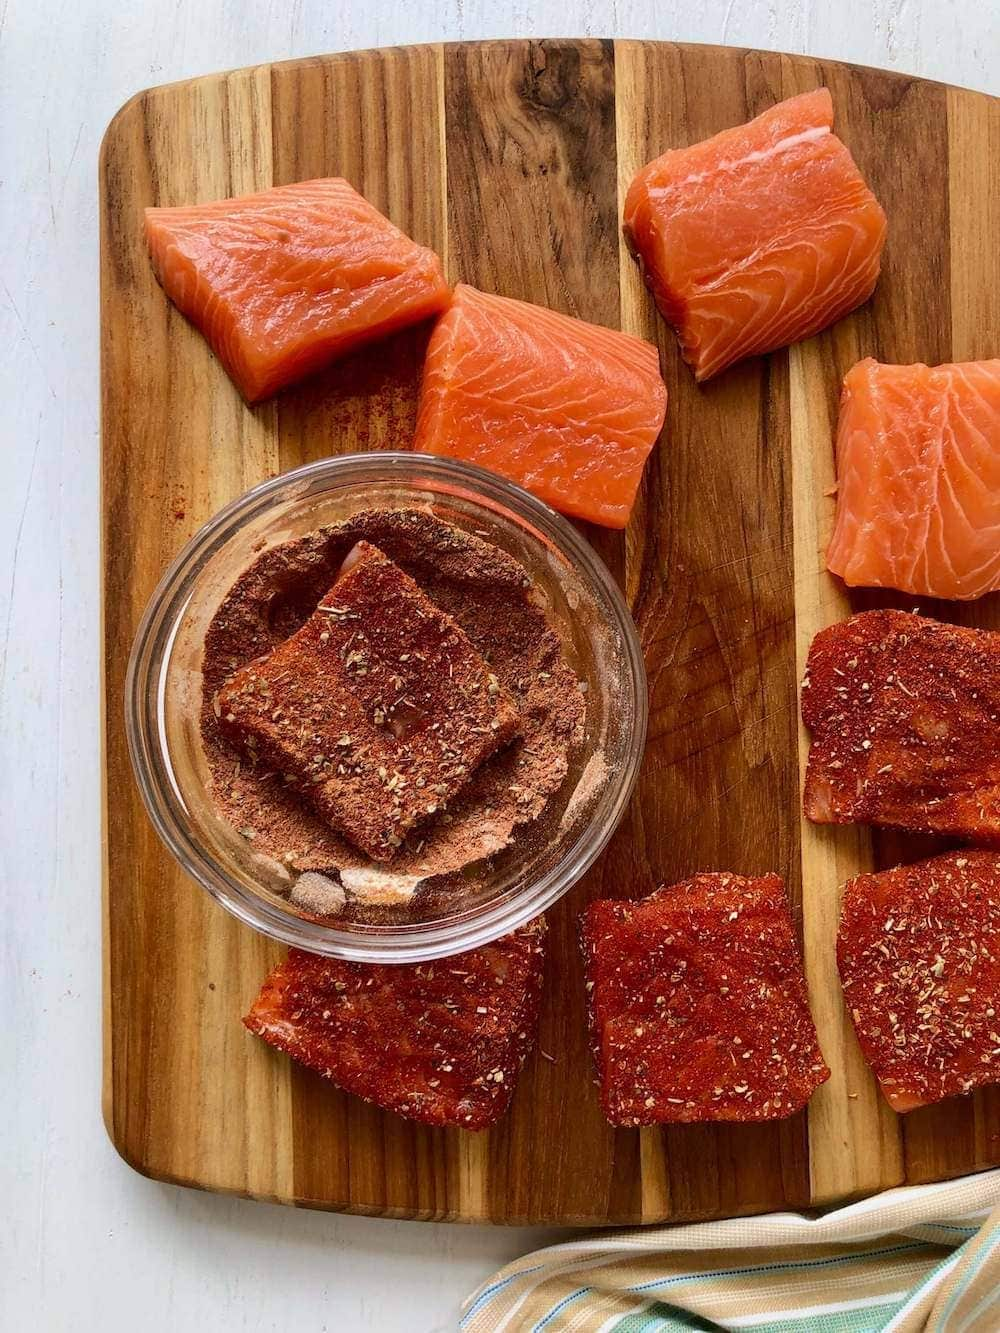 salmon with spices on cutting board